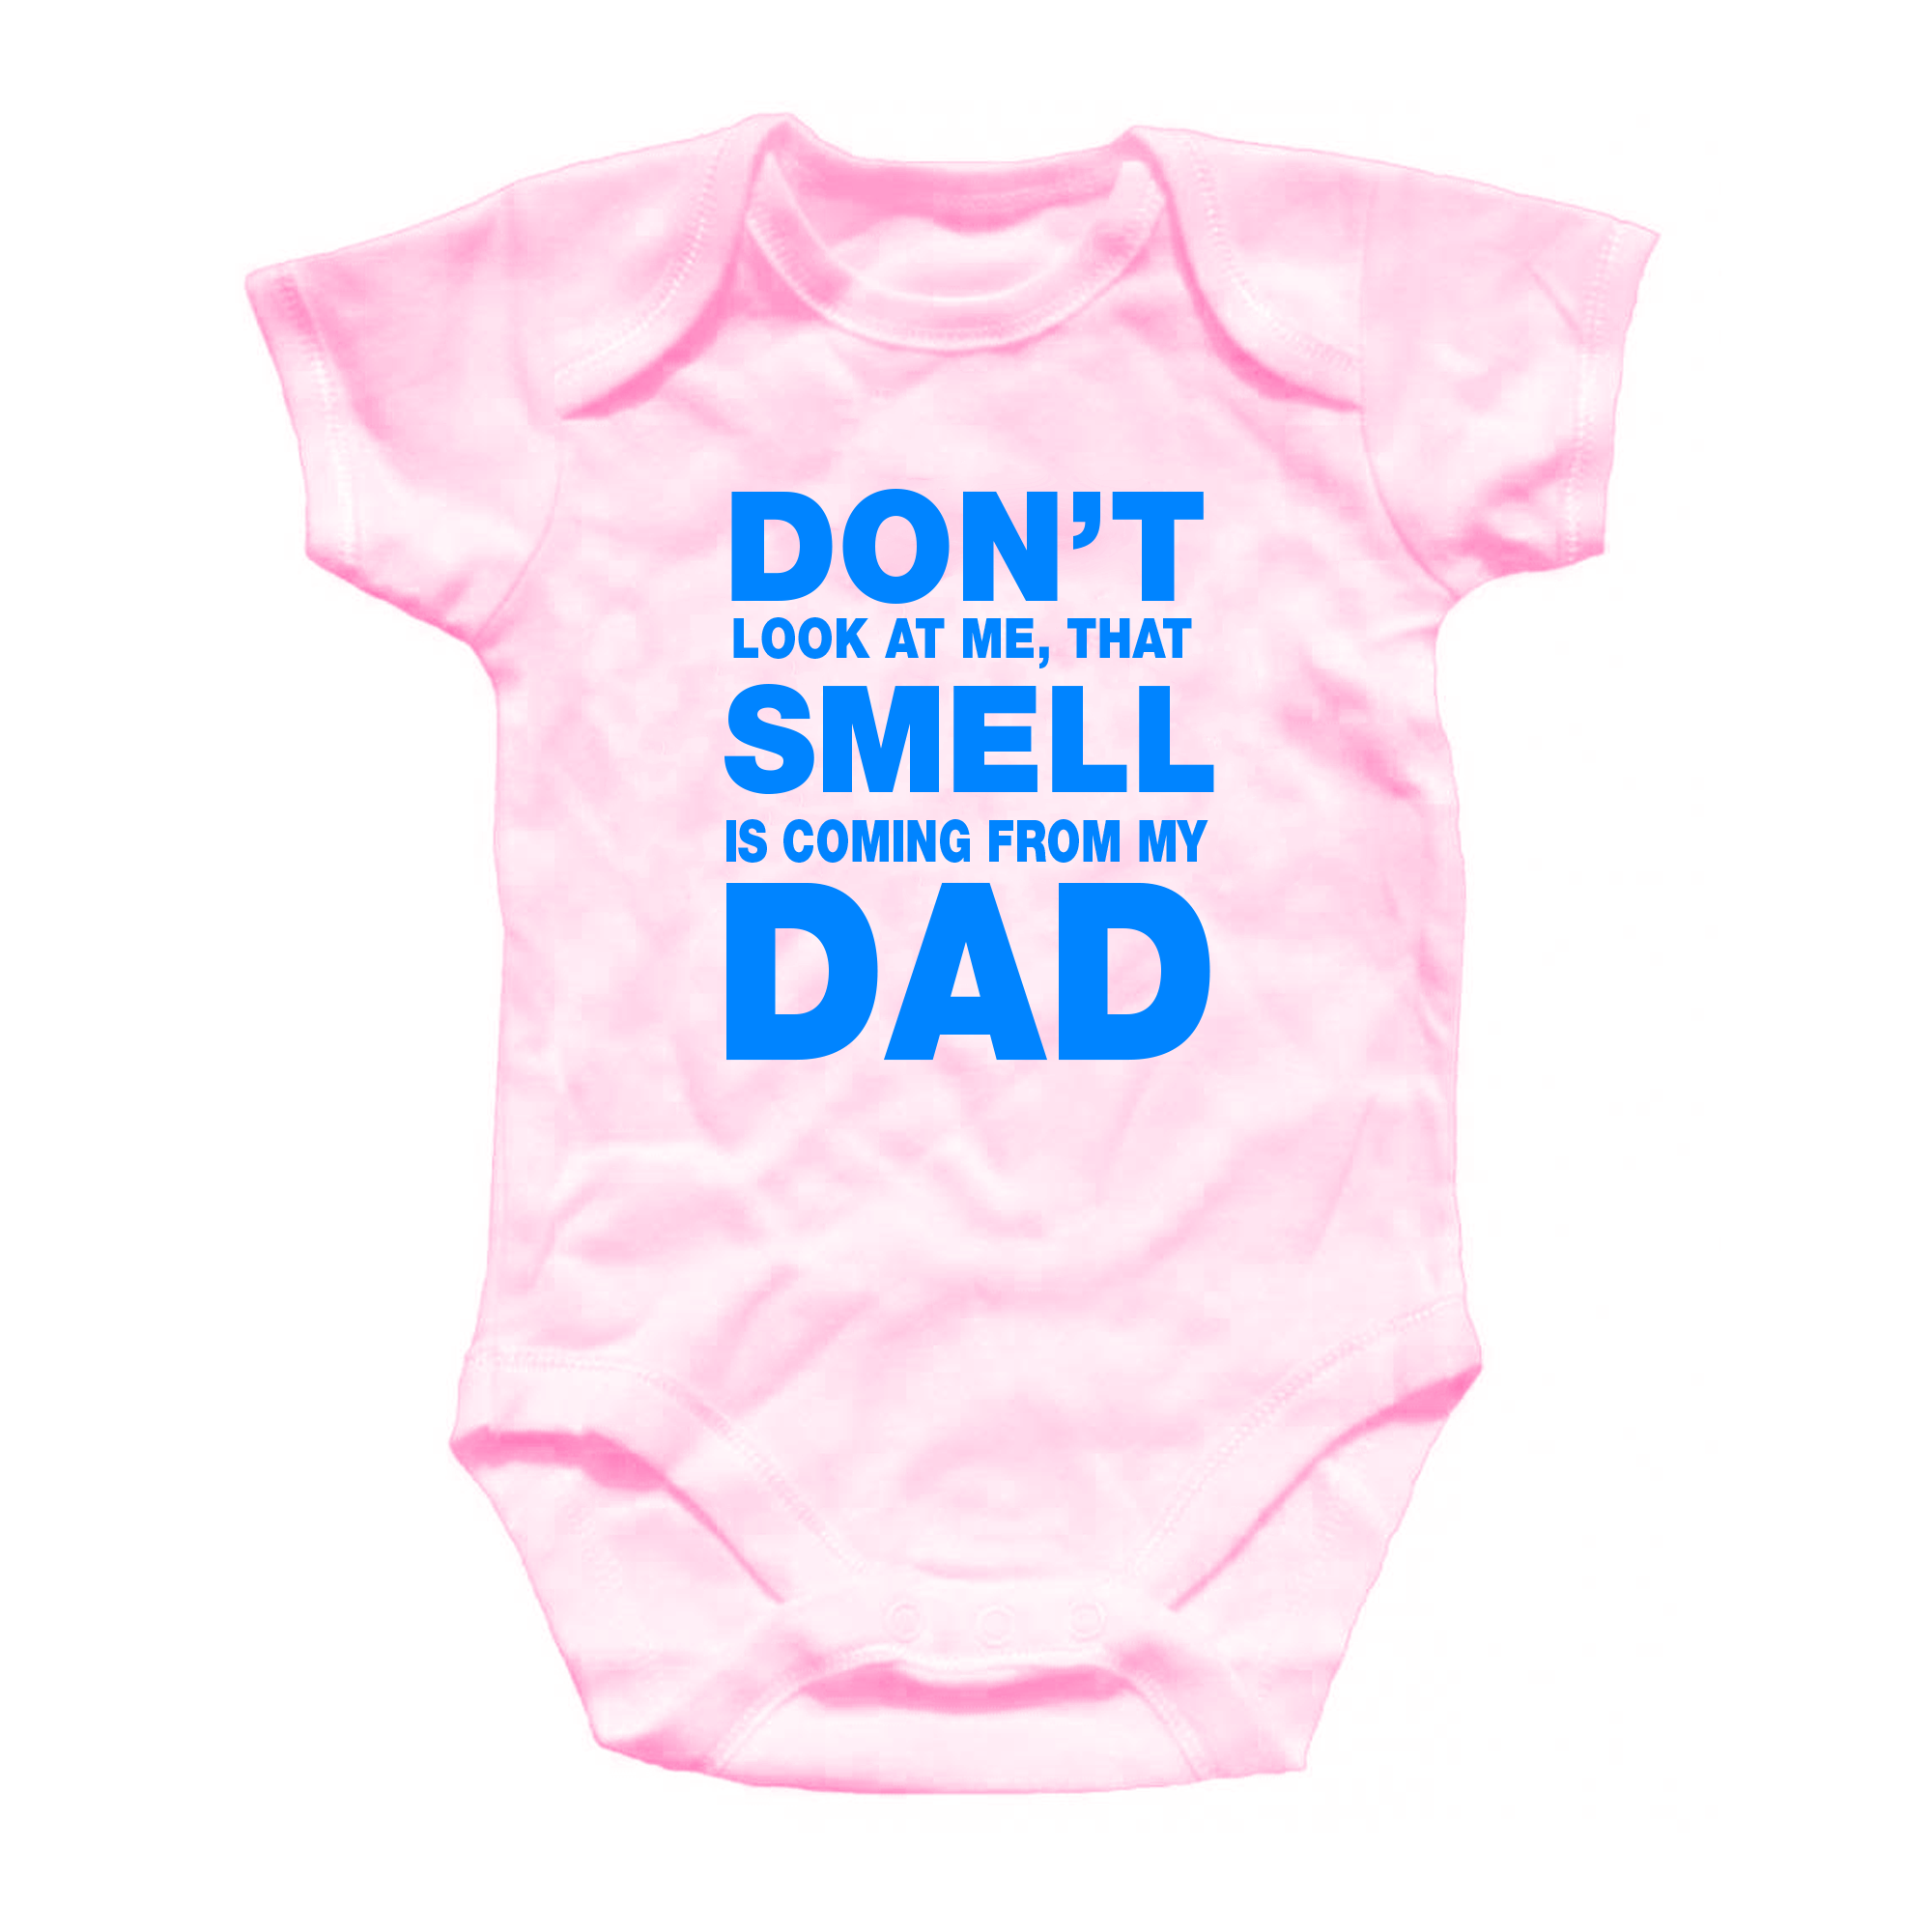 Funny Baby Gifts Uk : Don t look at me baby grow funny gift present boys girls